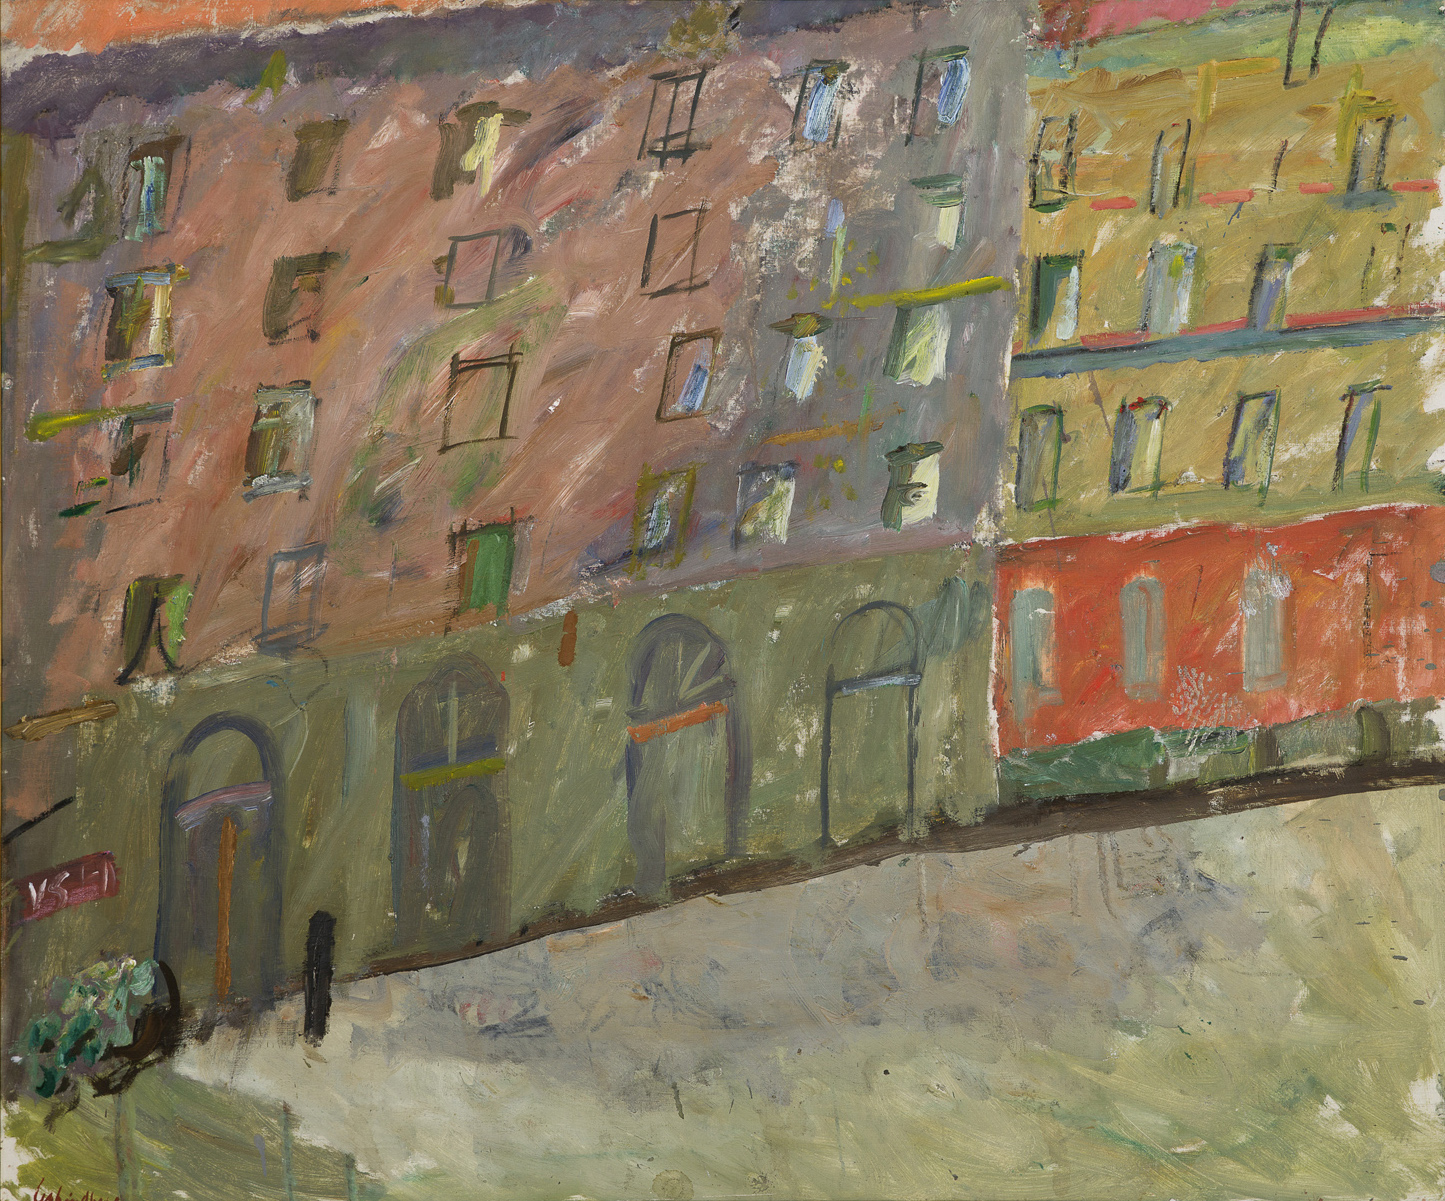 Alf Lindberg   Gatan  1969  Oil on canvas 115 x 138 cm